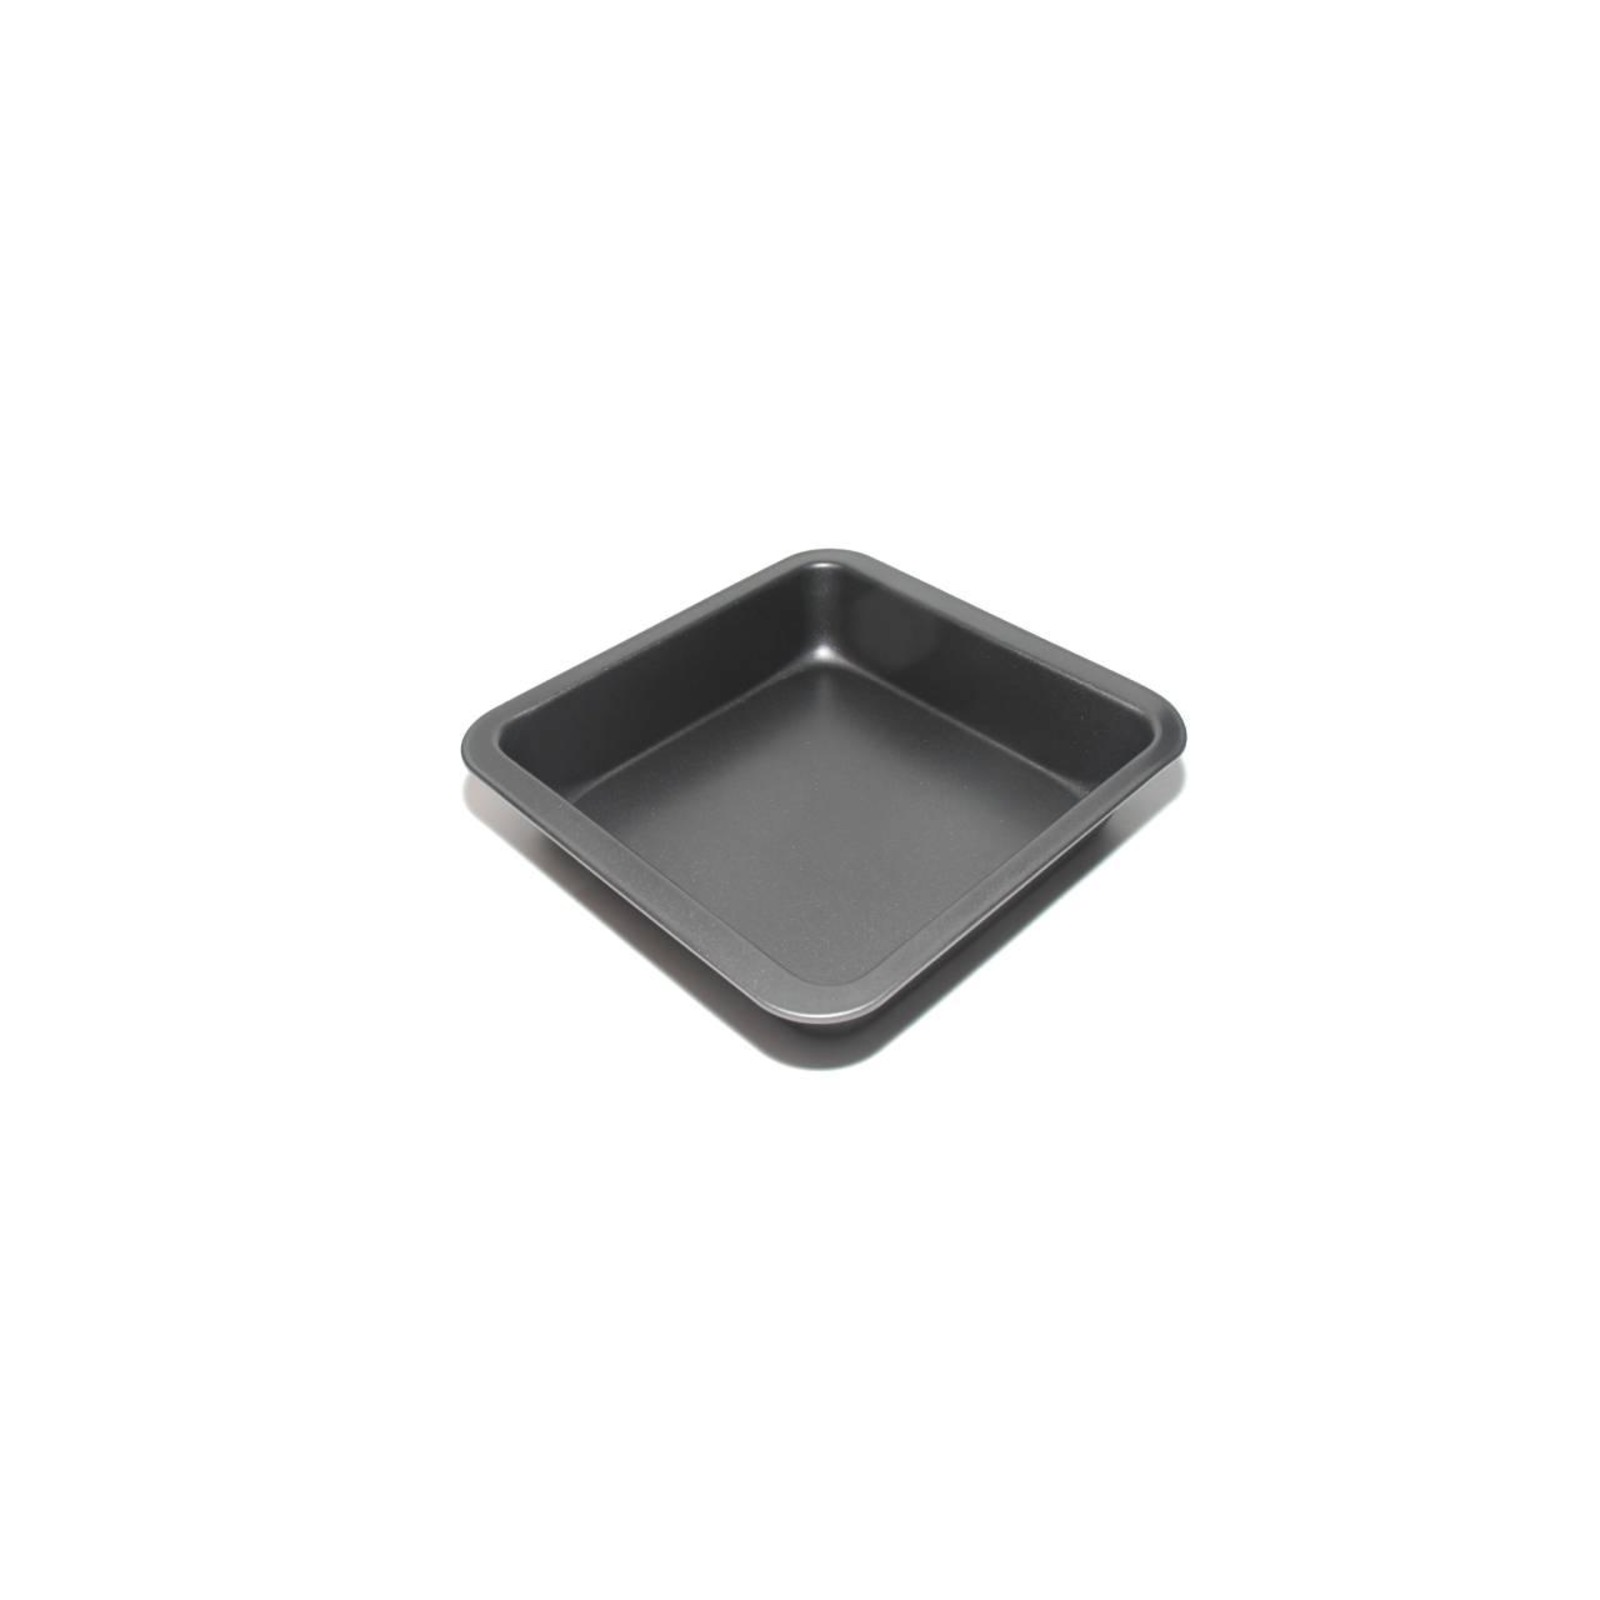 Heavy carbon steel AMW Square pan